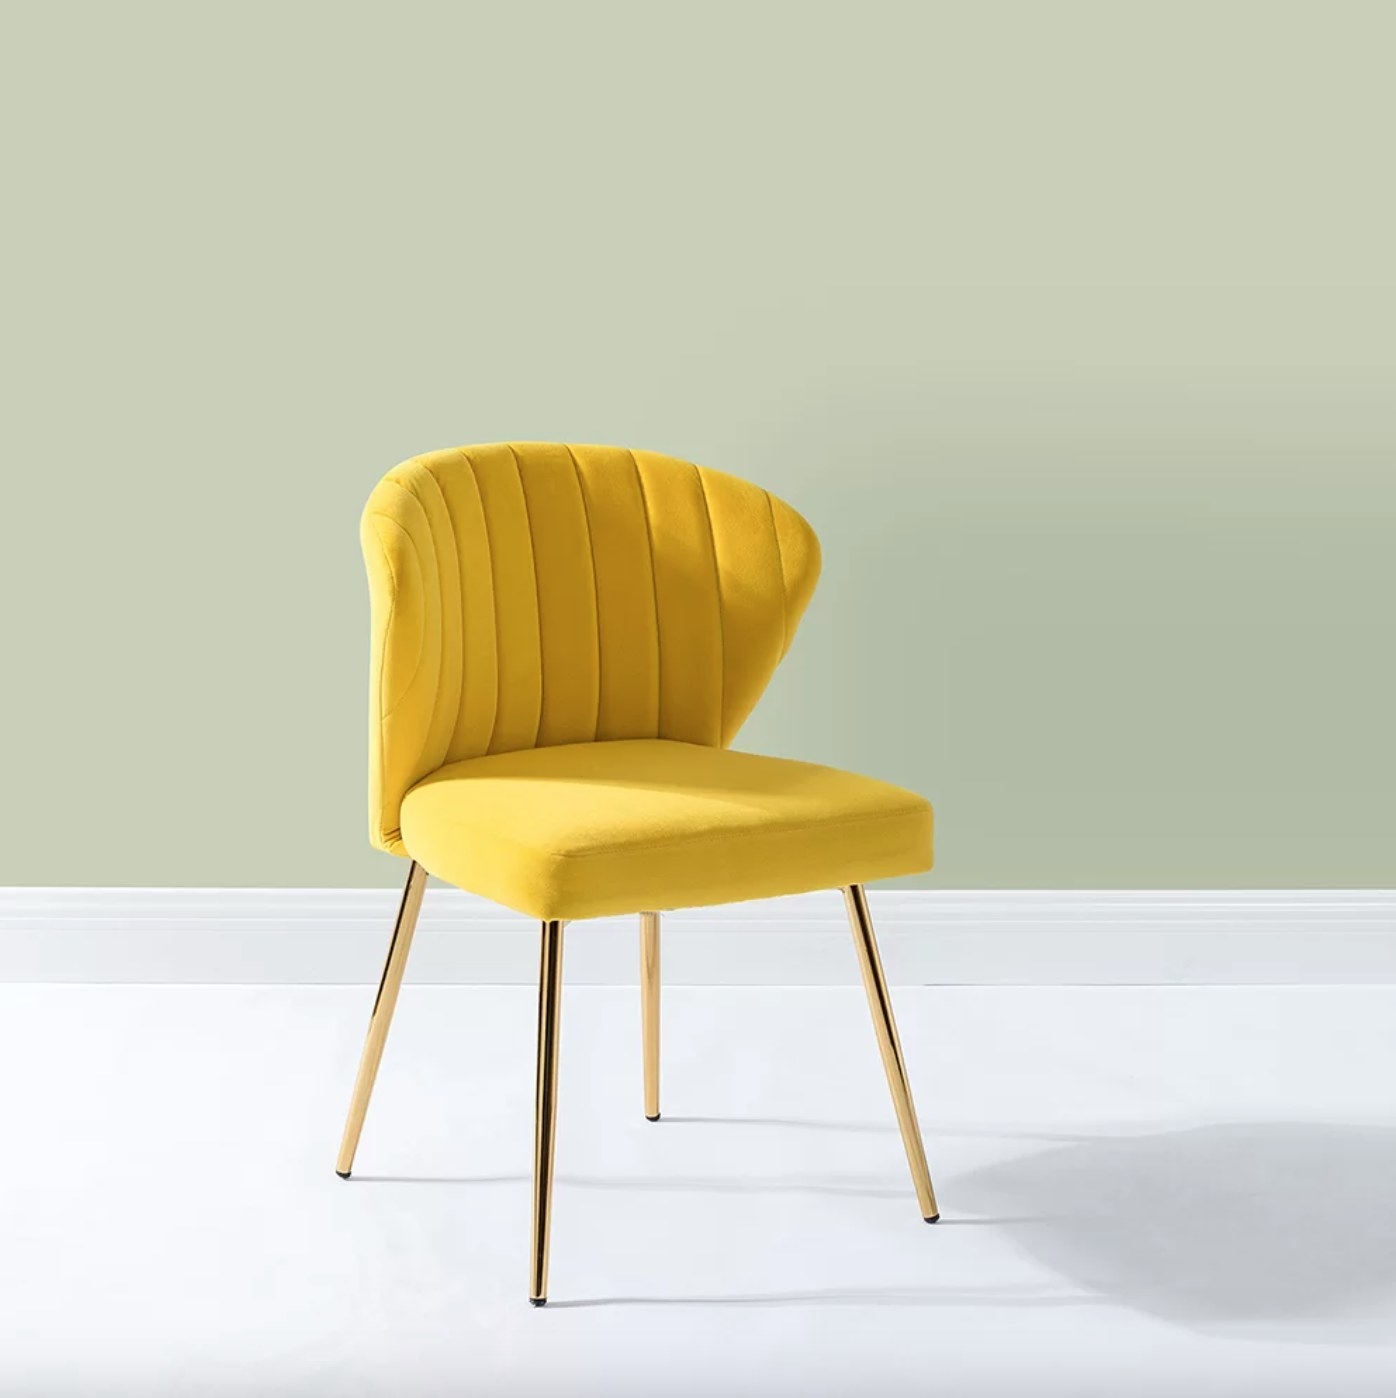 The tufted velvet side chair in yellow with gold legs